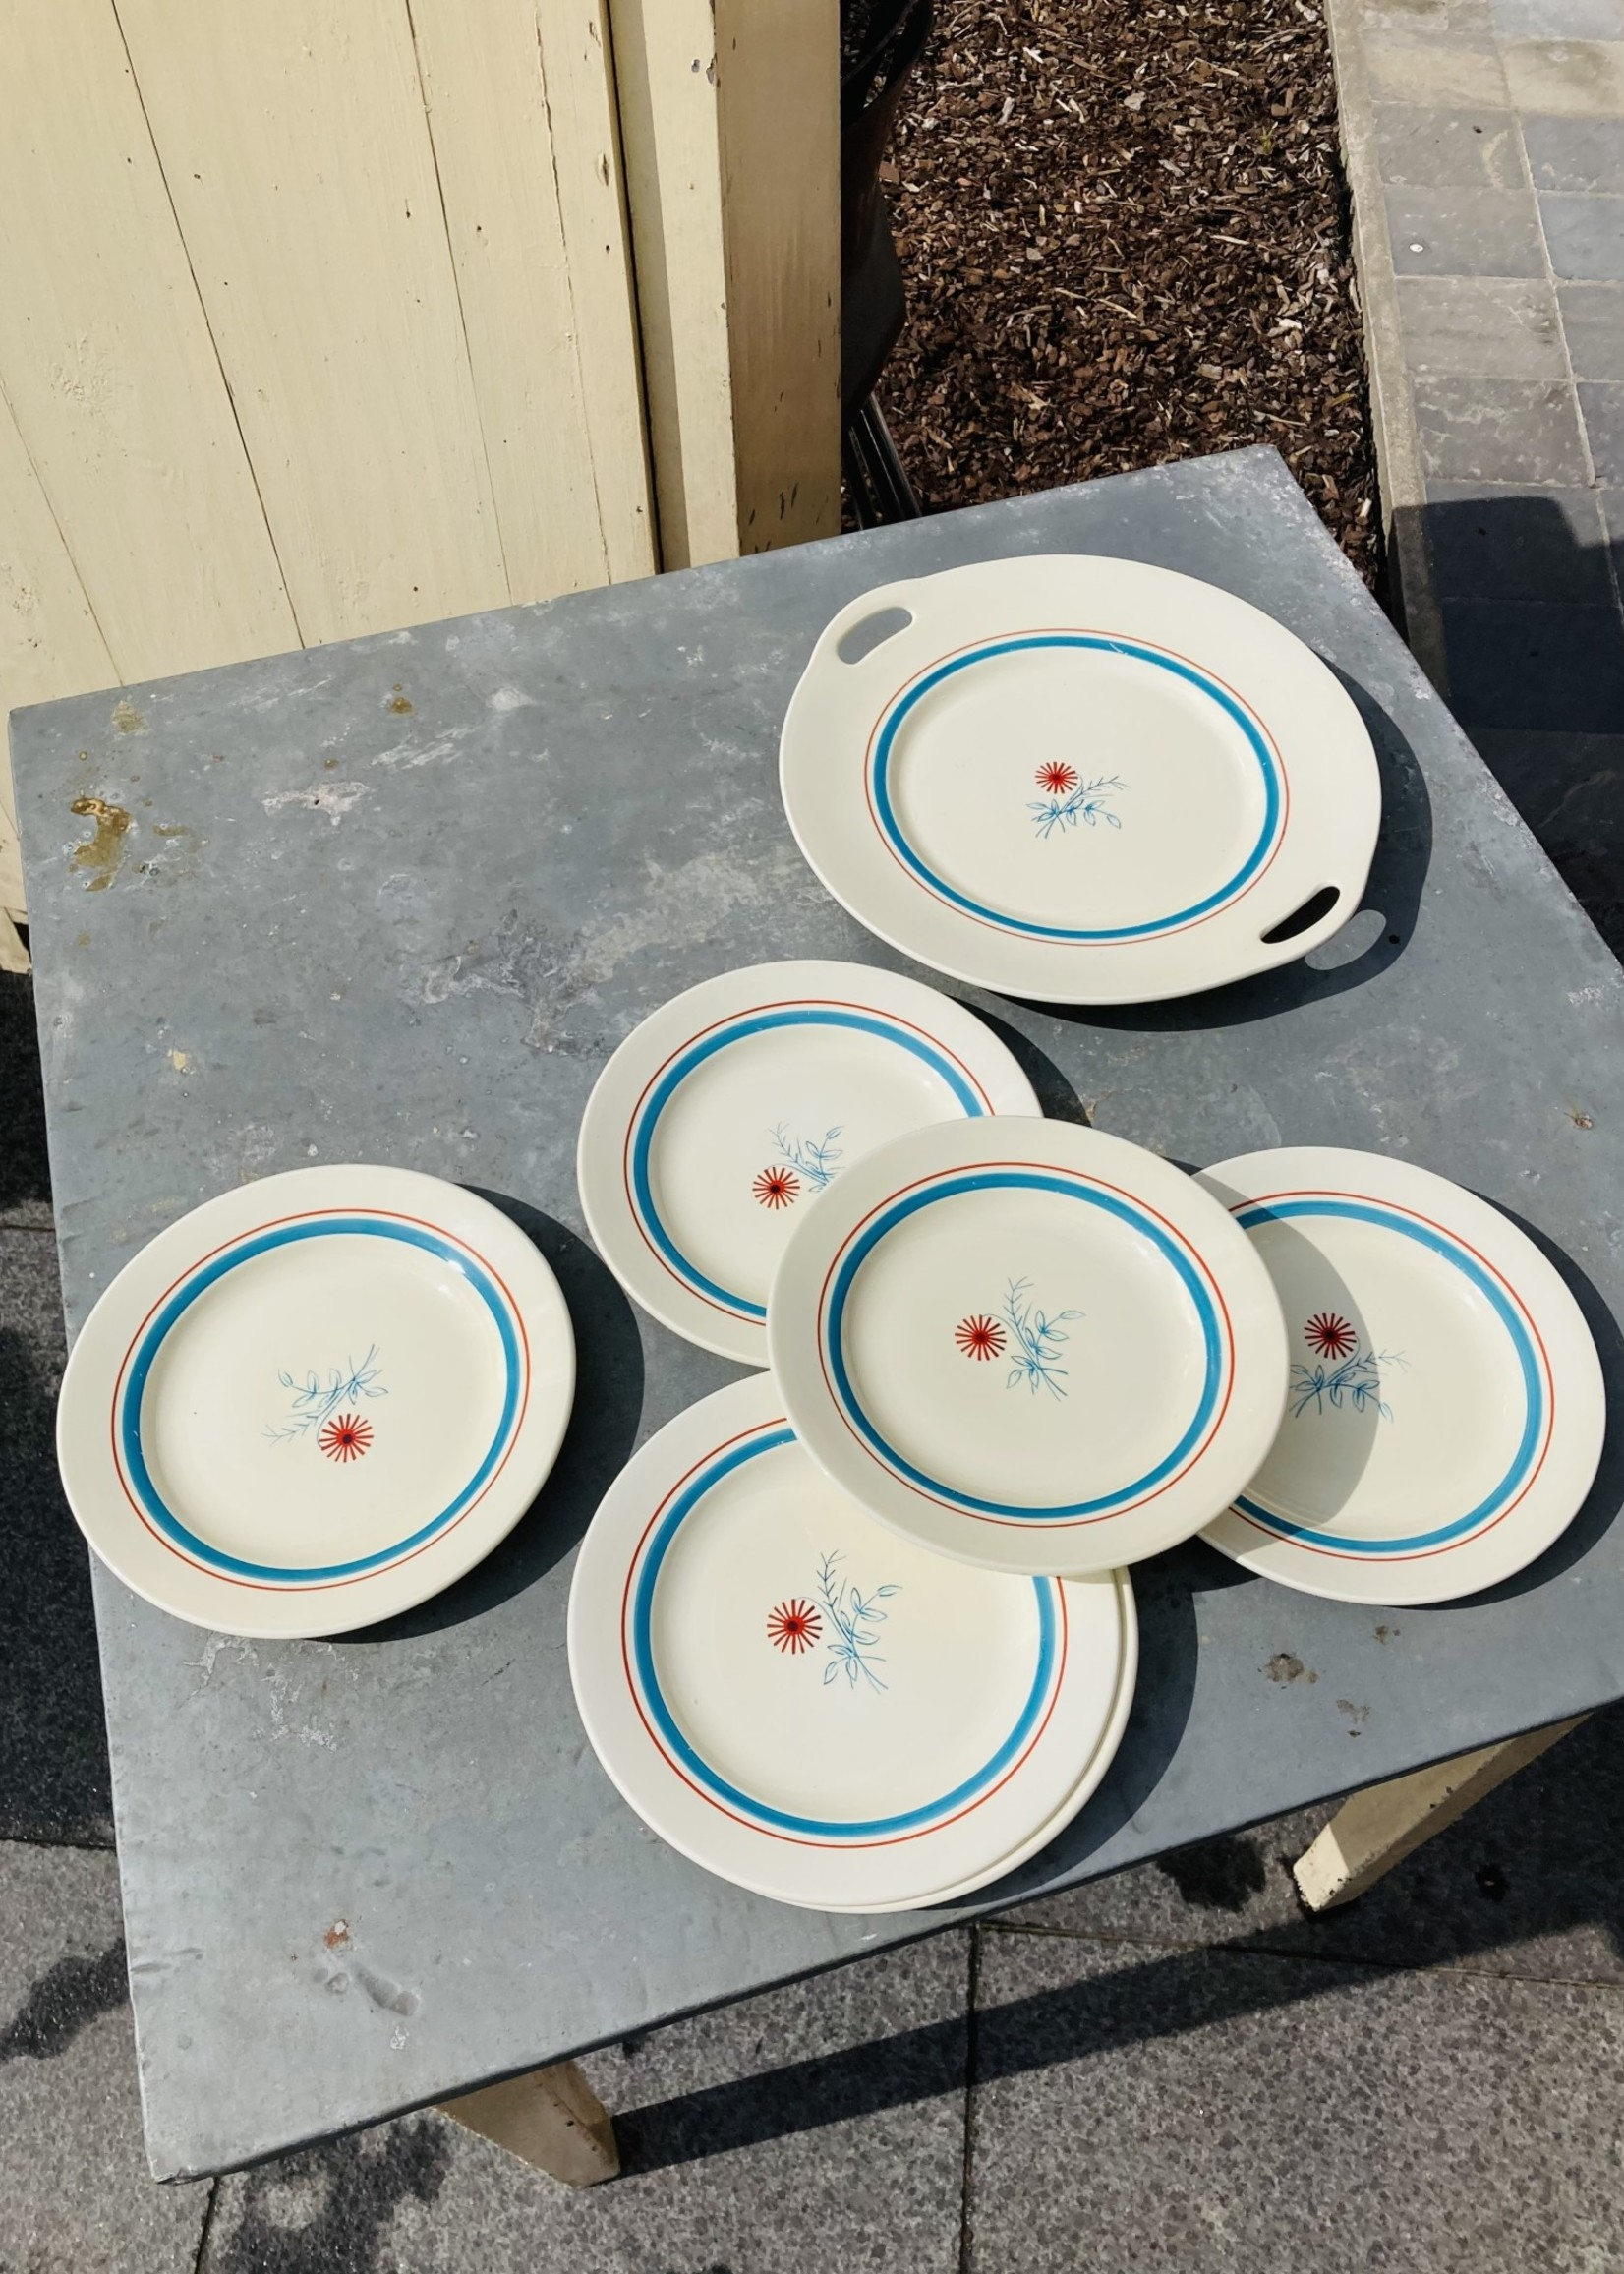 Desert Plates from Nimy with Blue and red flower